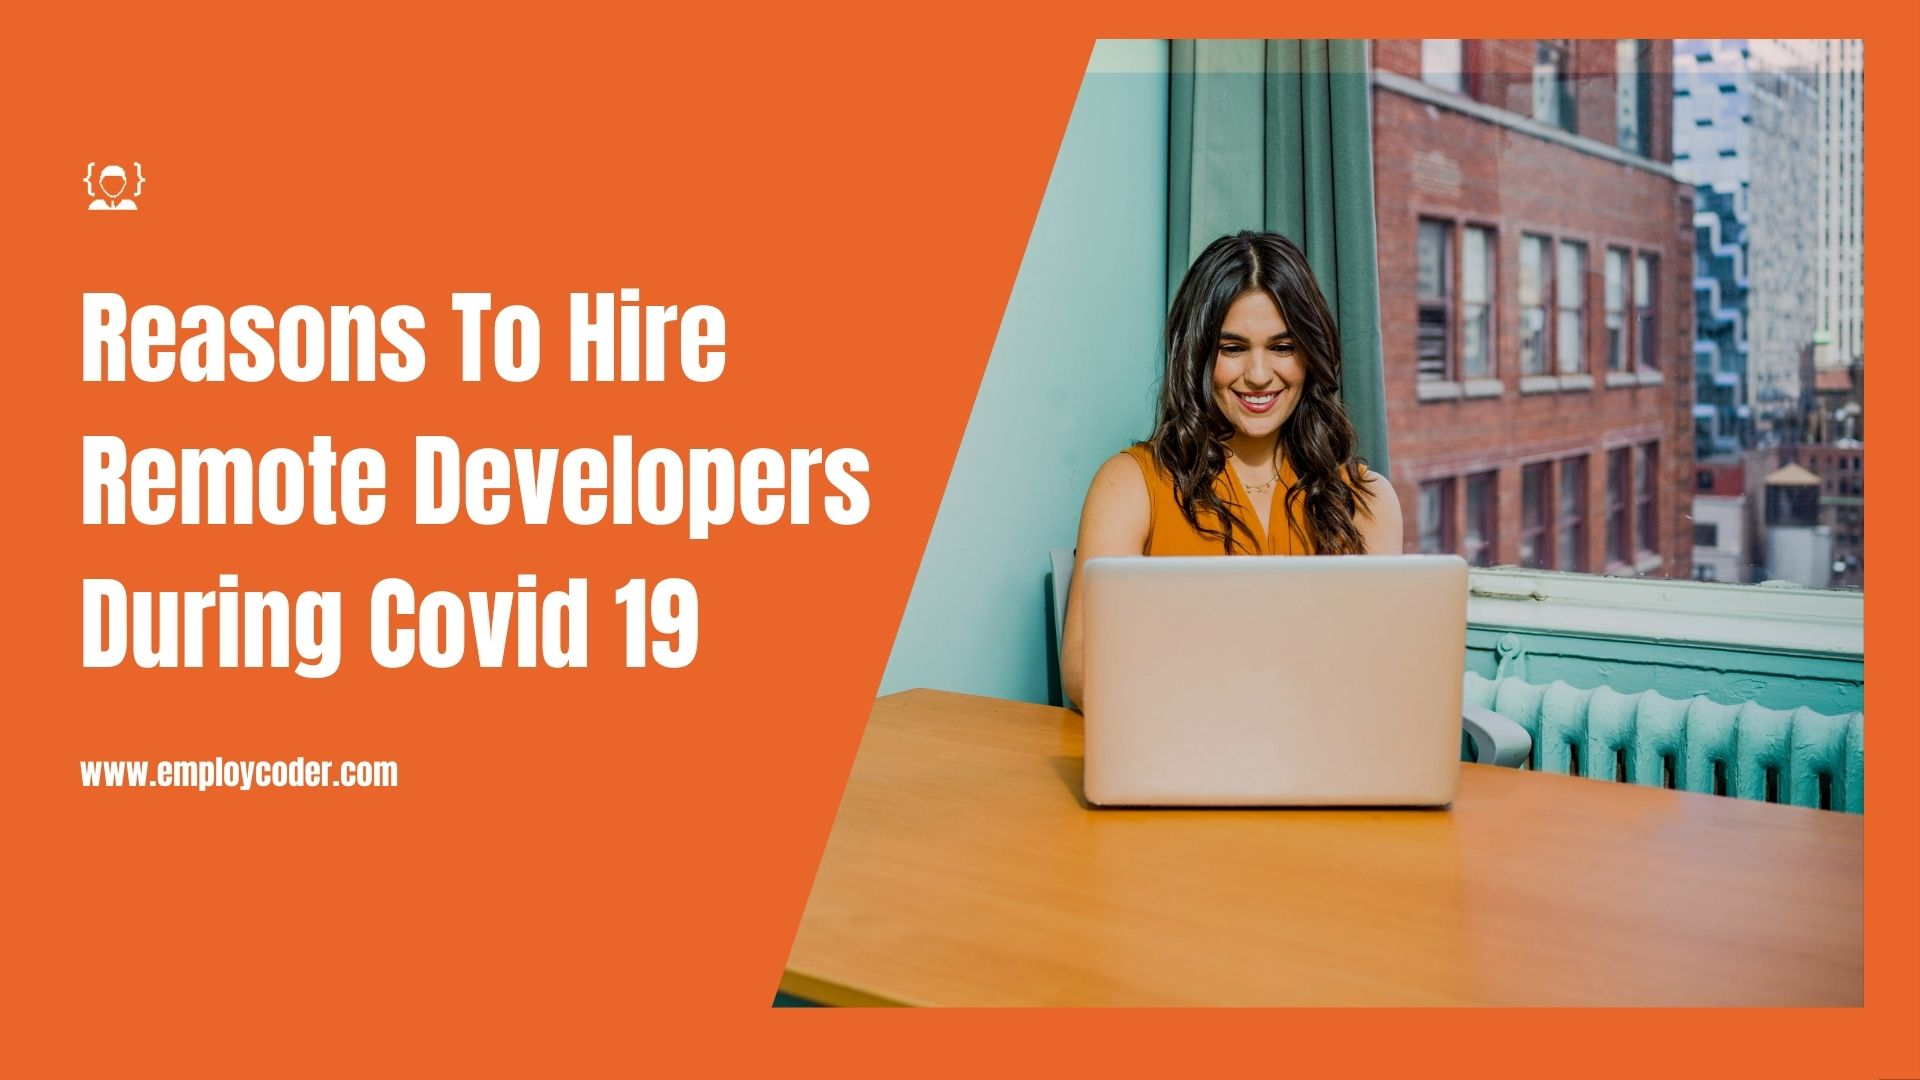 Reasons Why You Should Hire Developers During Covid 19 Second Wave?